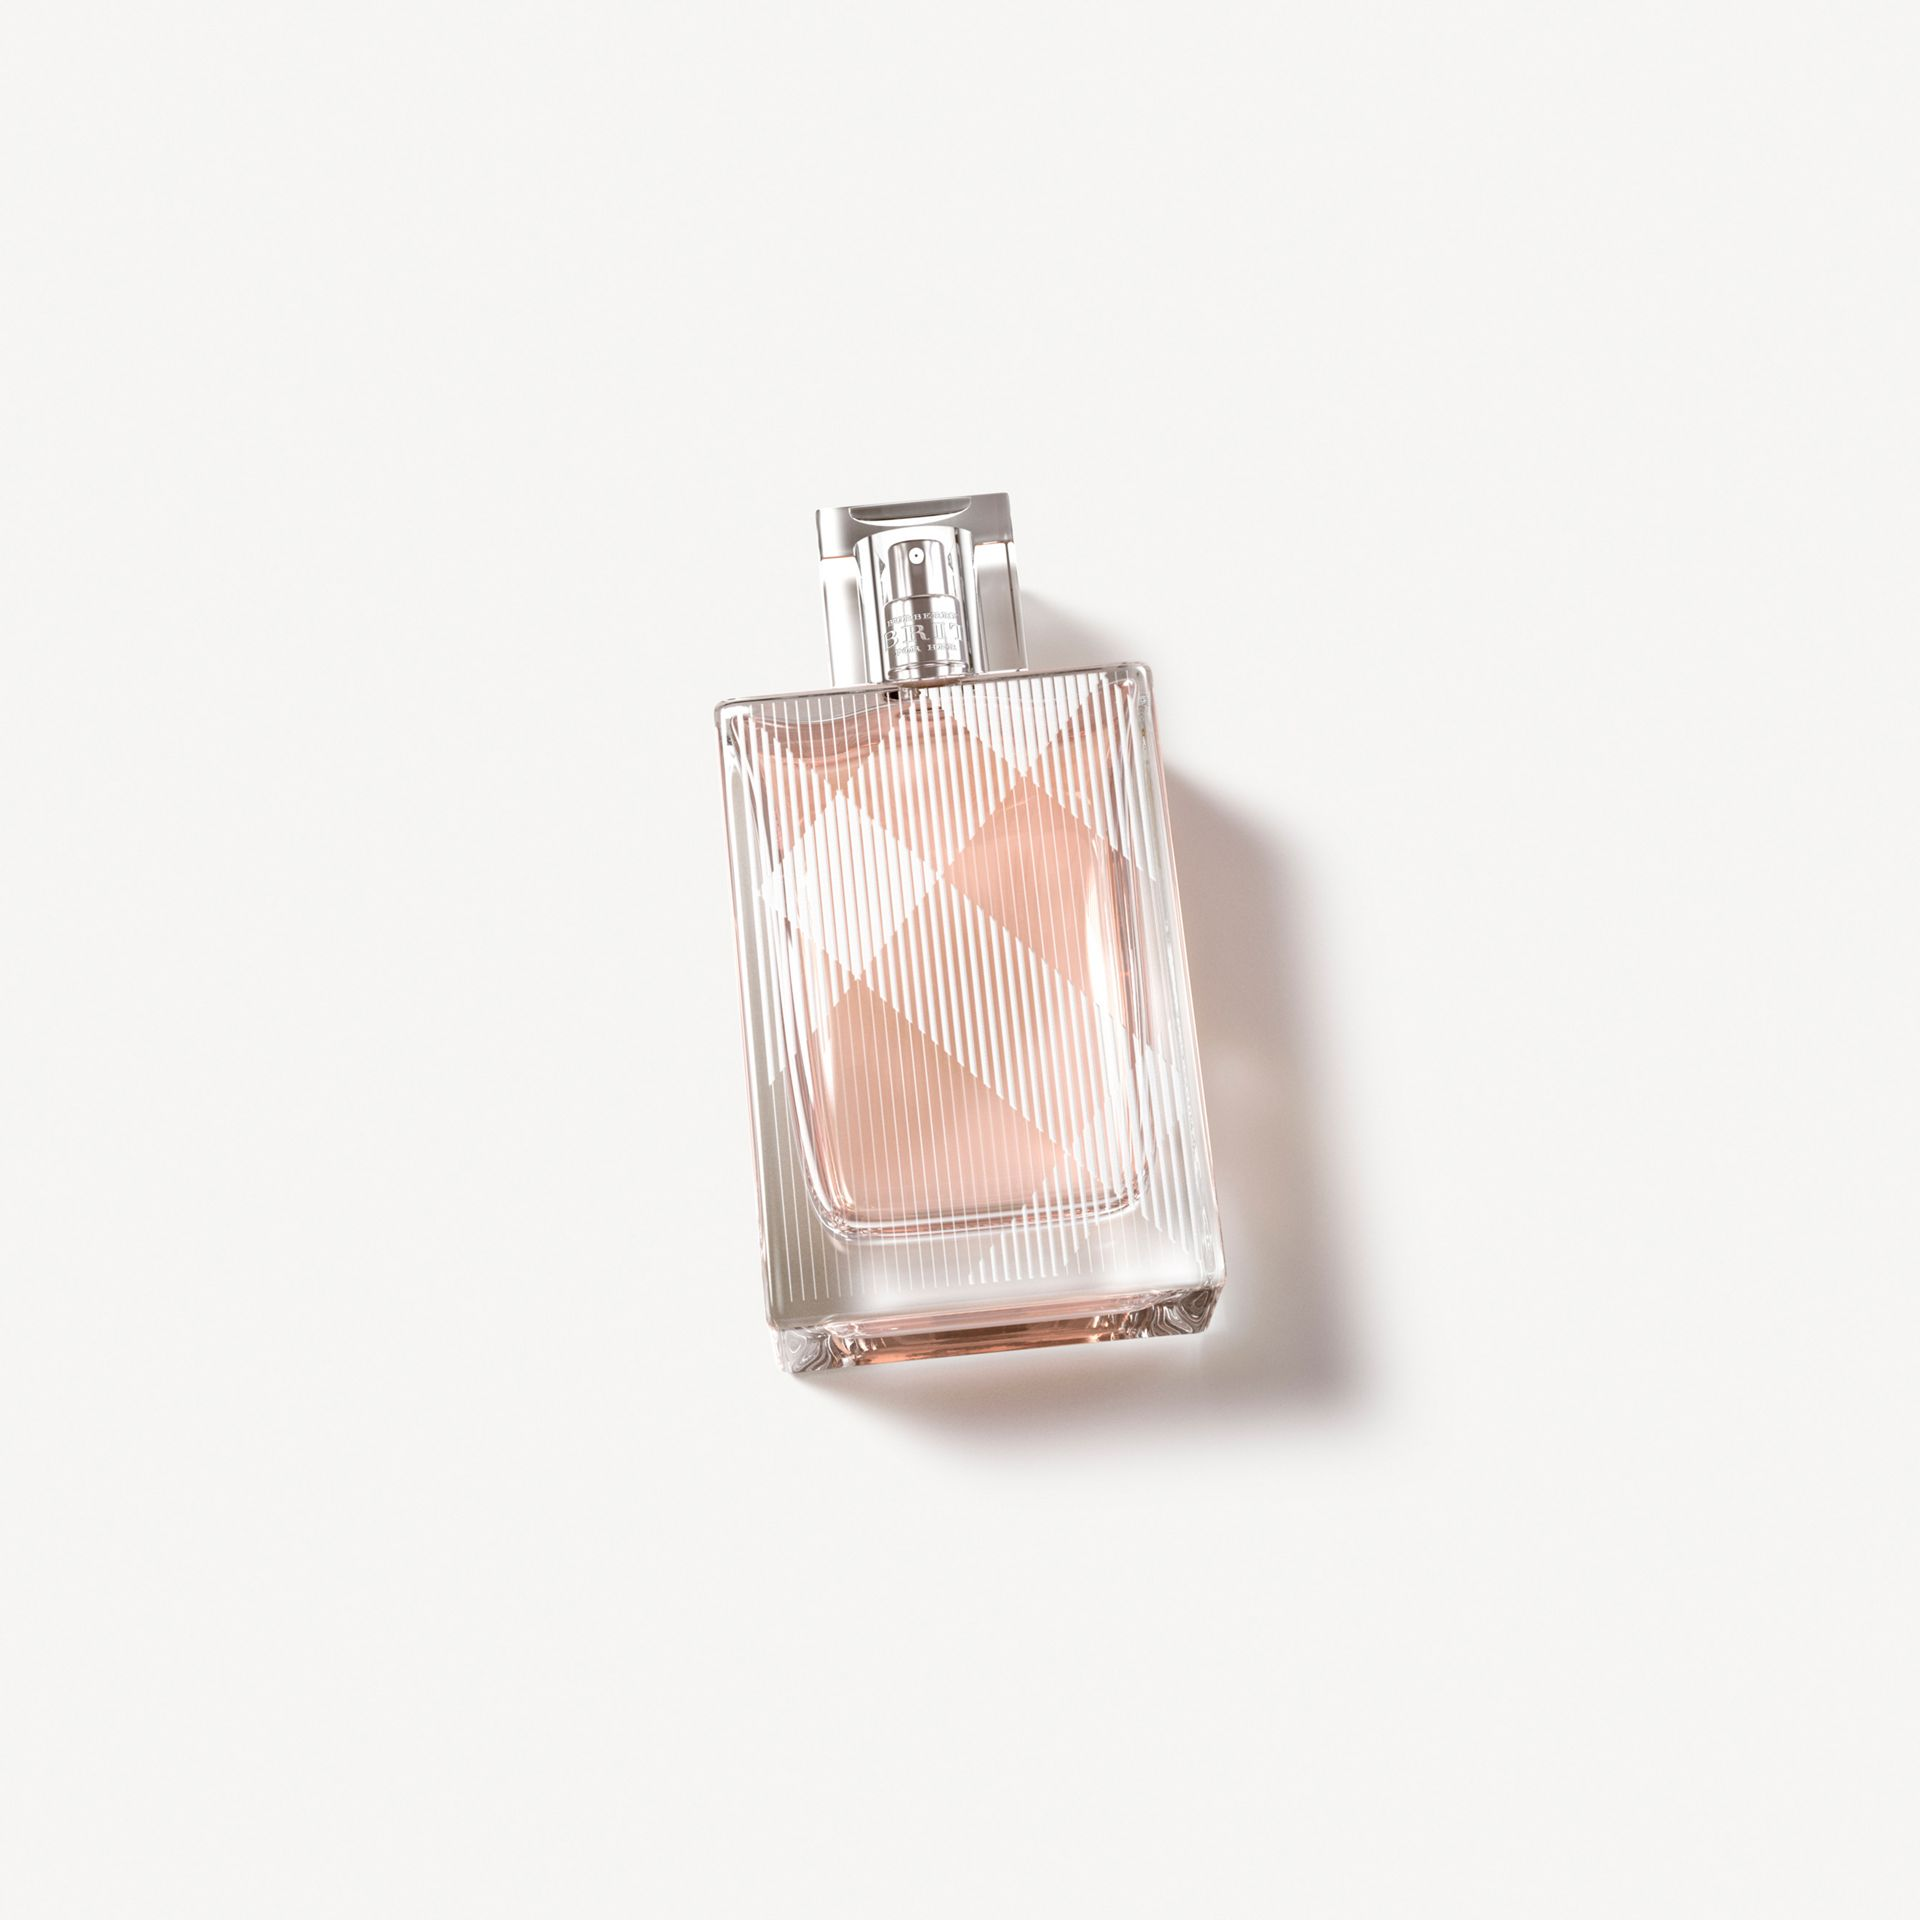 Burberry Brit For Her Eau de Toilette 50ml - gallery image 1